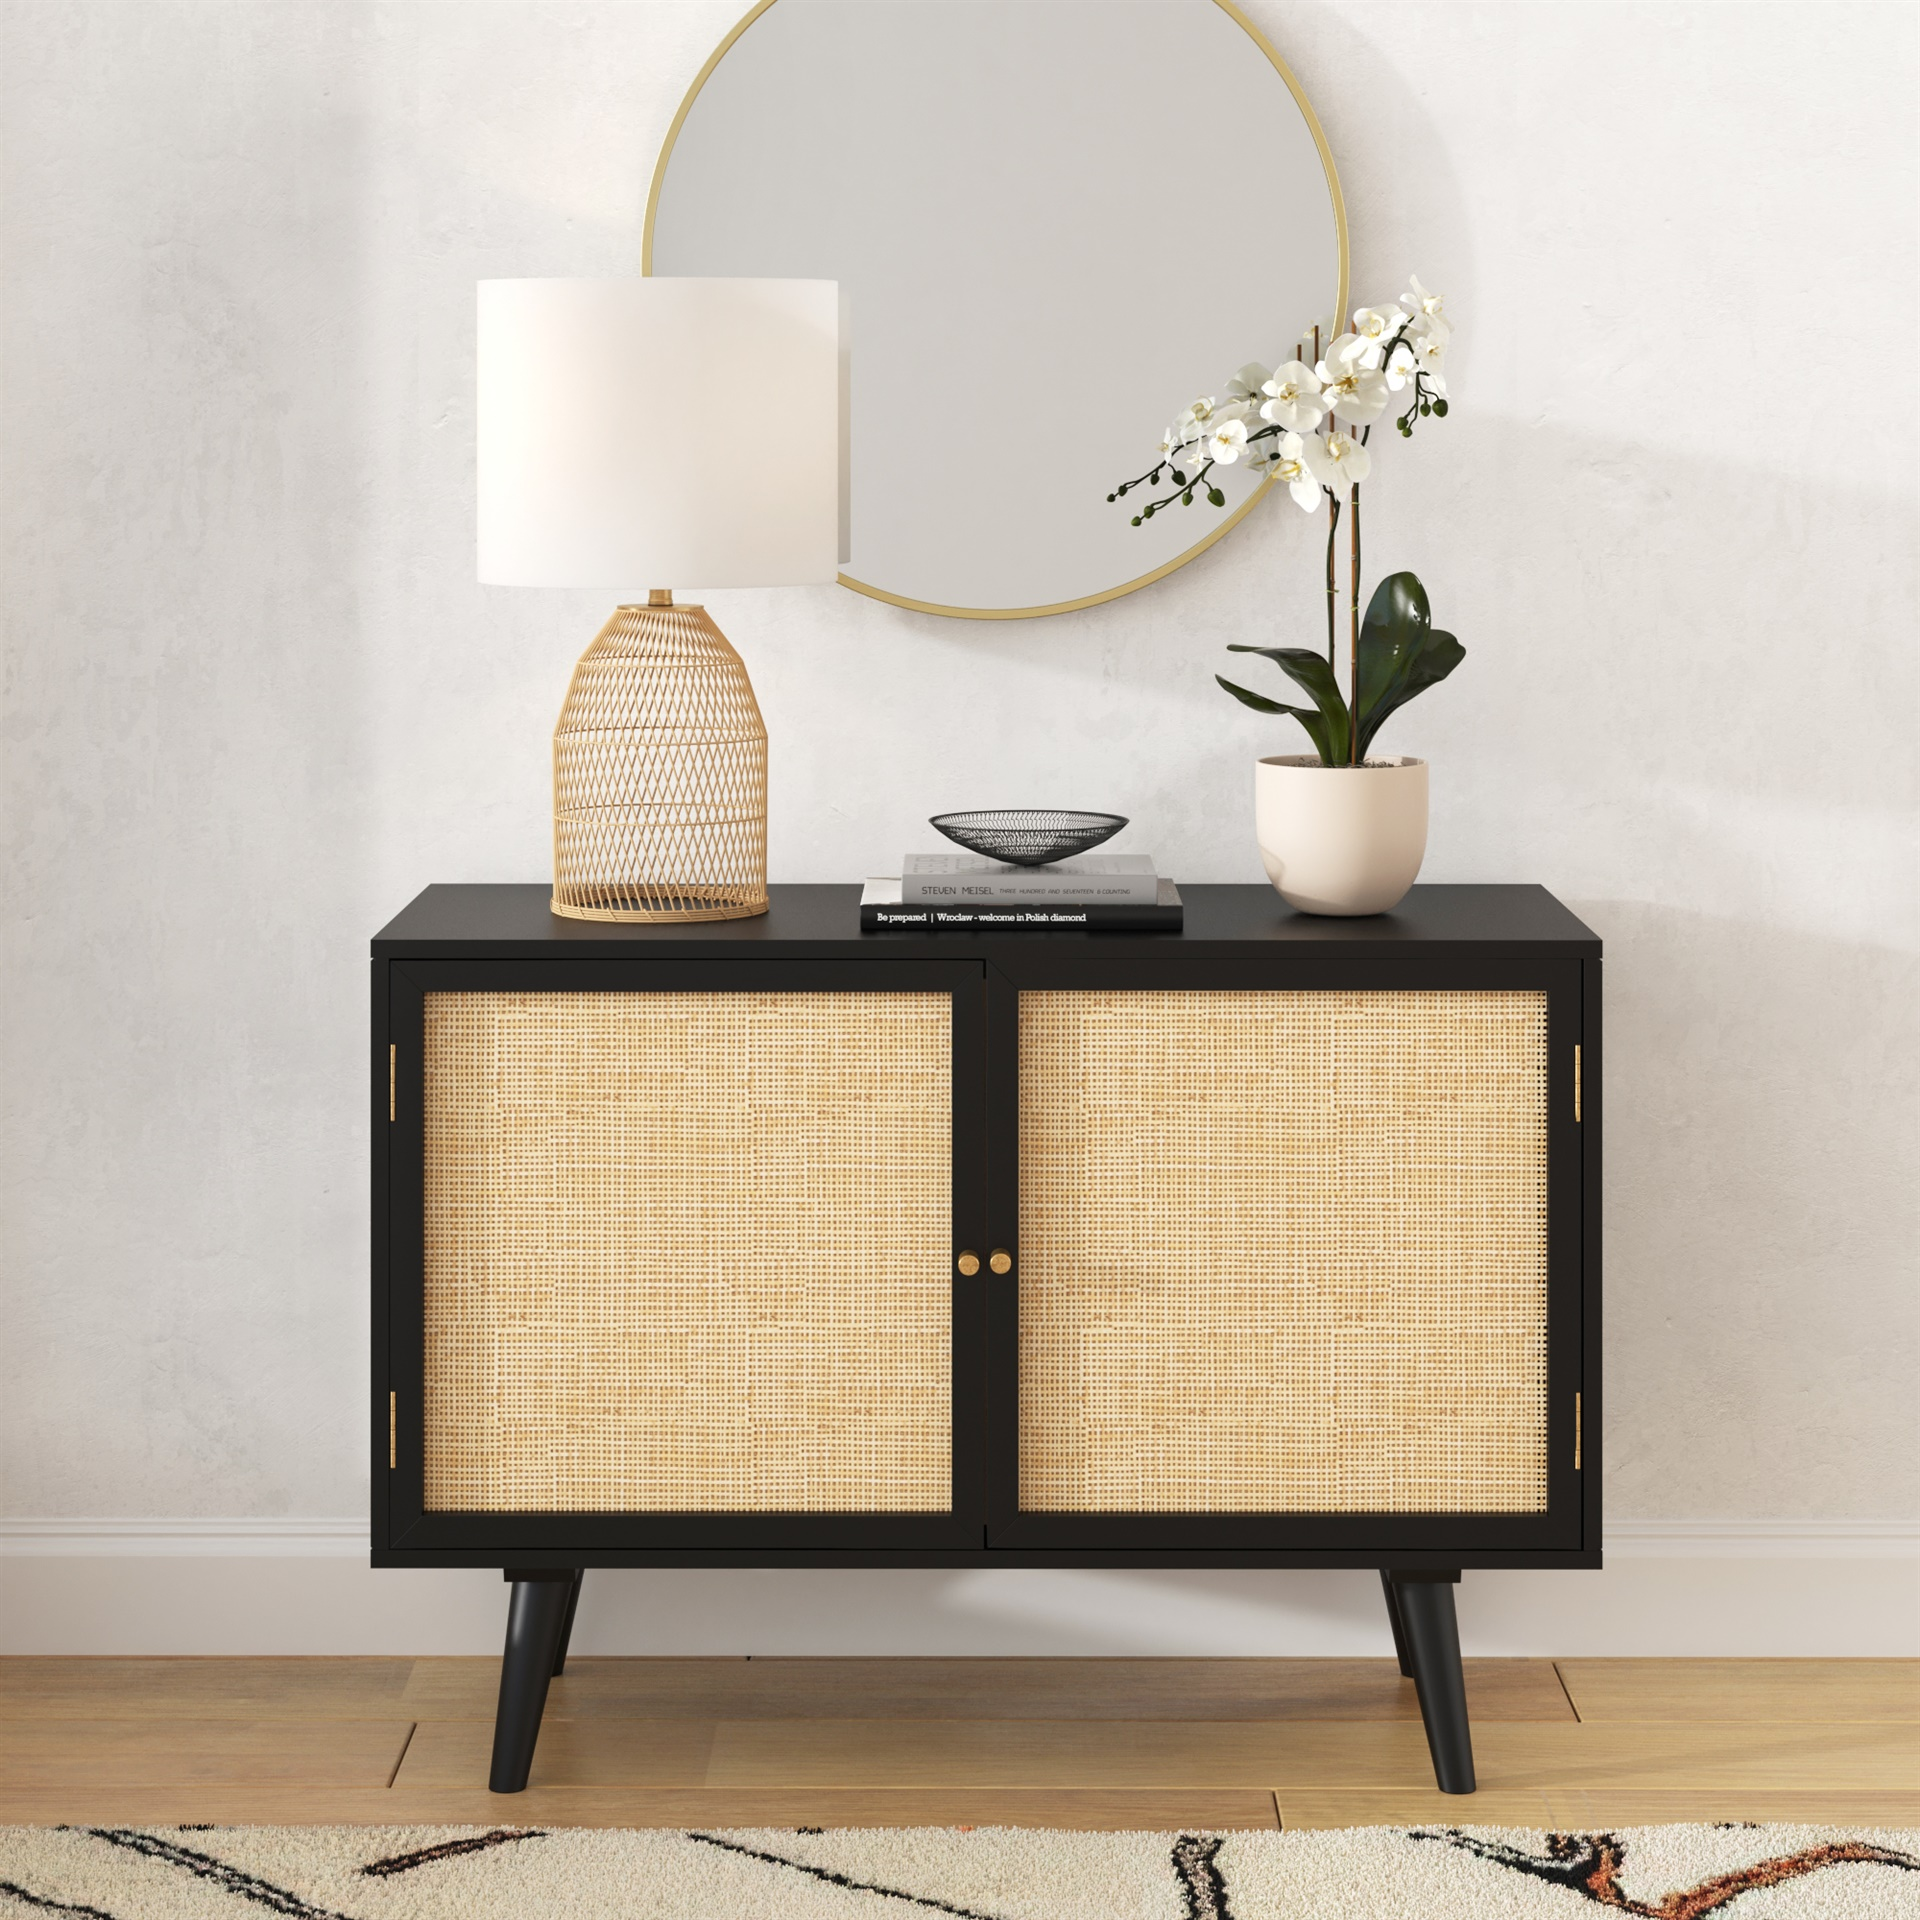 natural cane rattan plant and real mango wood sideboard with vintage peg handles and splayed legs from modern furniture store inmod - padstyle.com